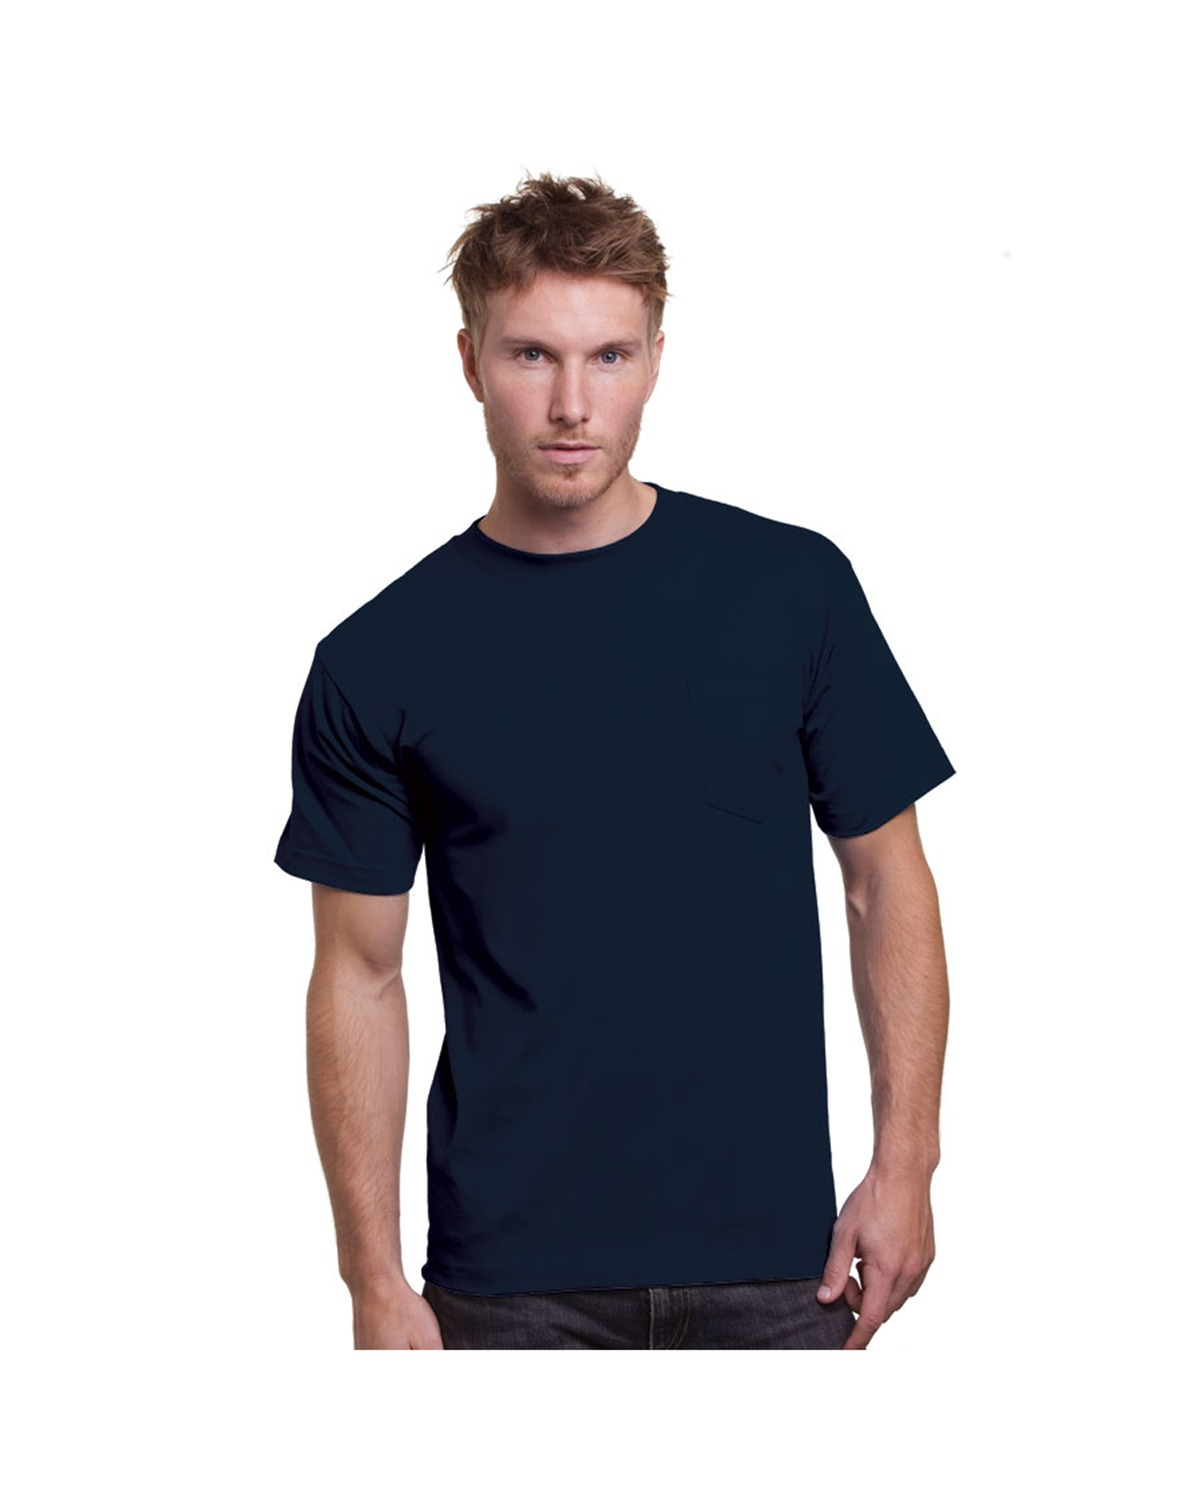 Bayside 3015 Union Made Short Sleeve T-Shirt with a Pocket